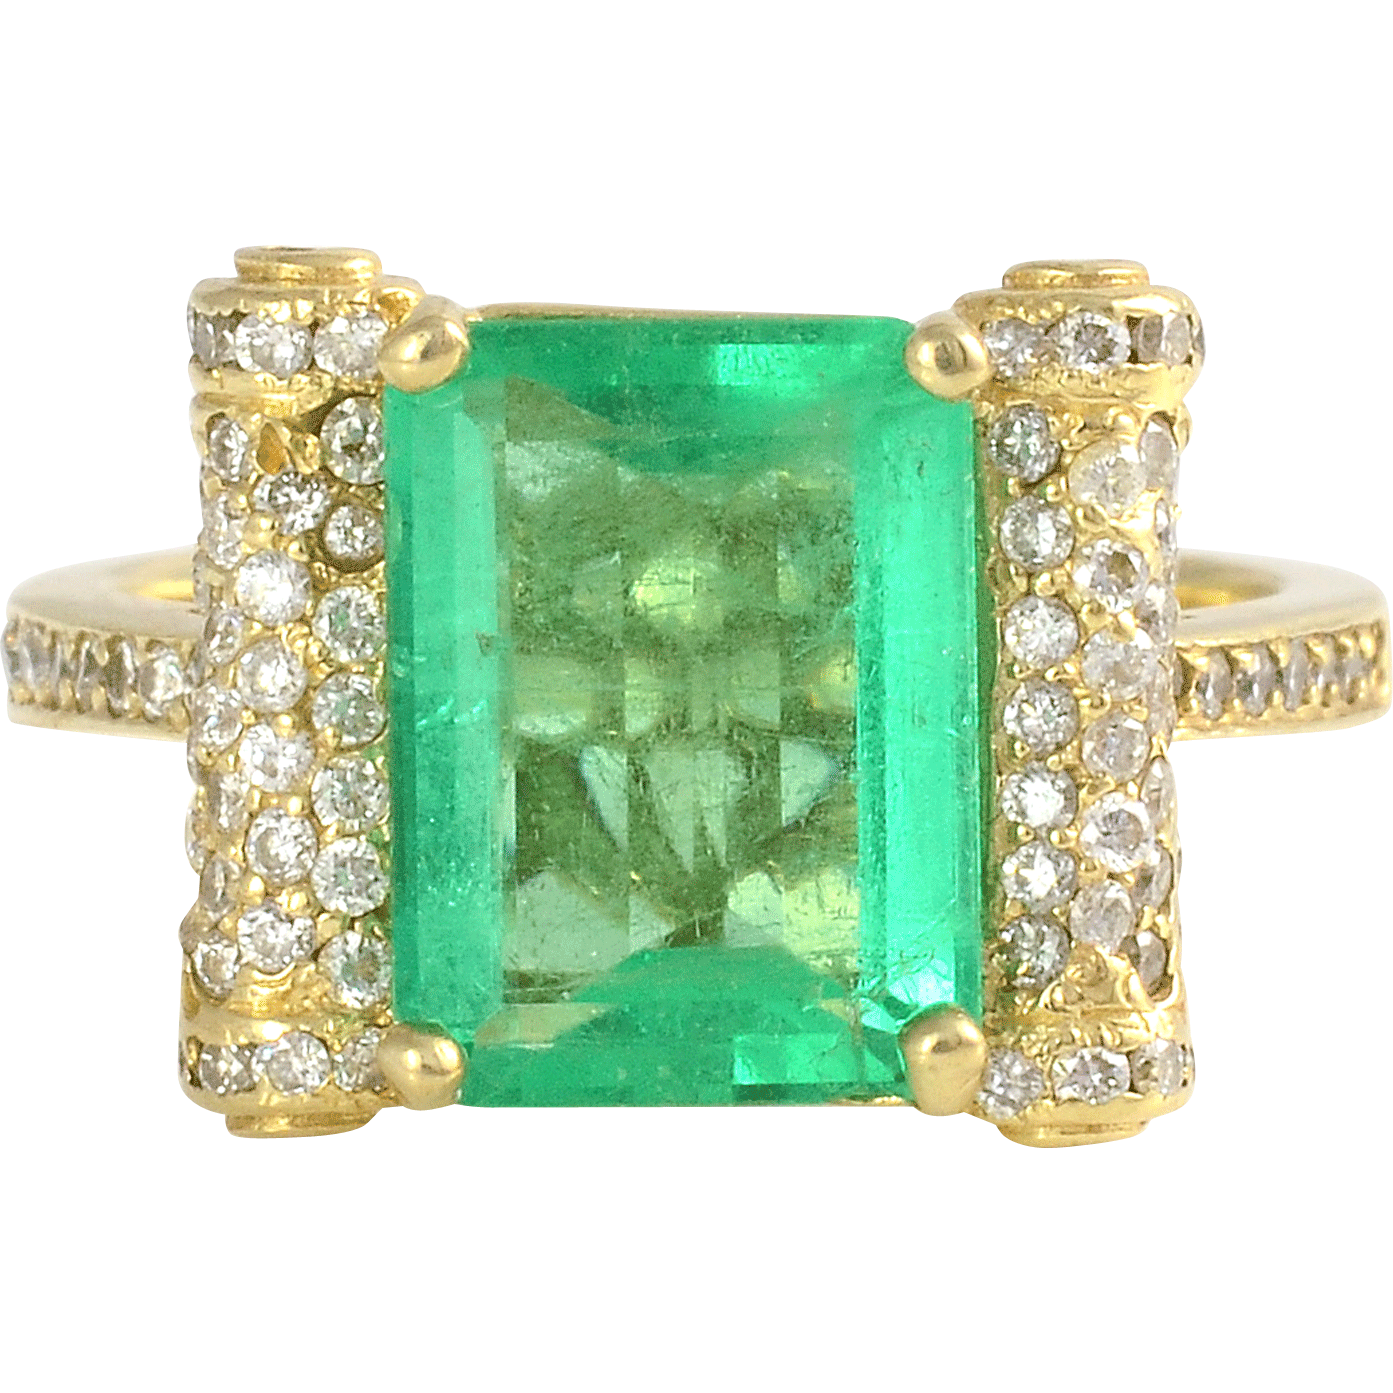 3.62 Carat Emerald Ring with Diamonds